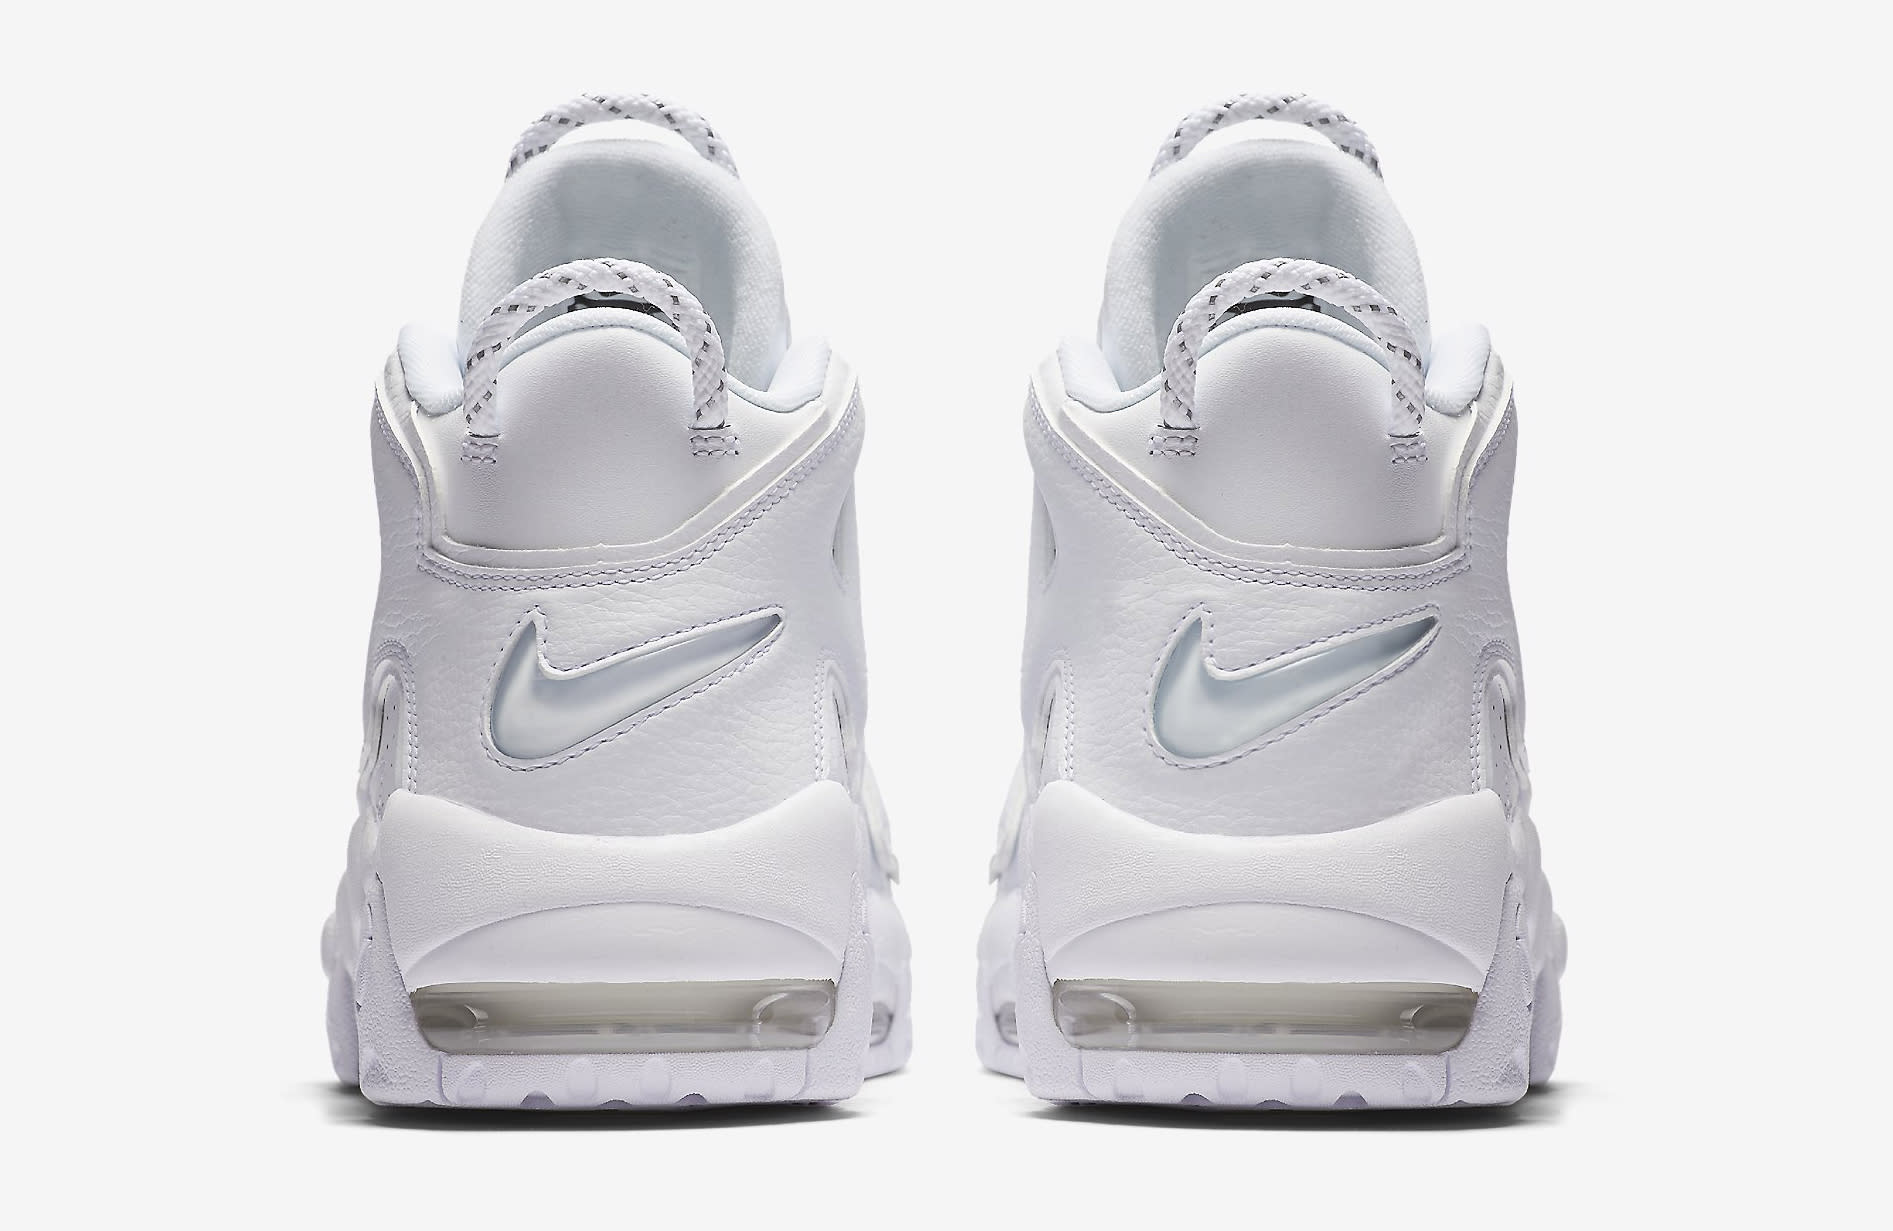 Triple White Nike Air More Uptempo 921948-100 Heel